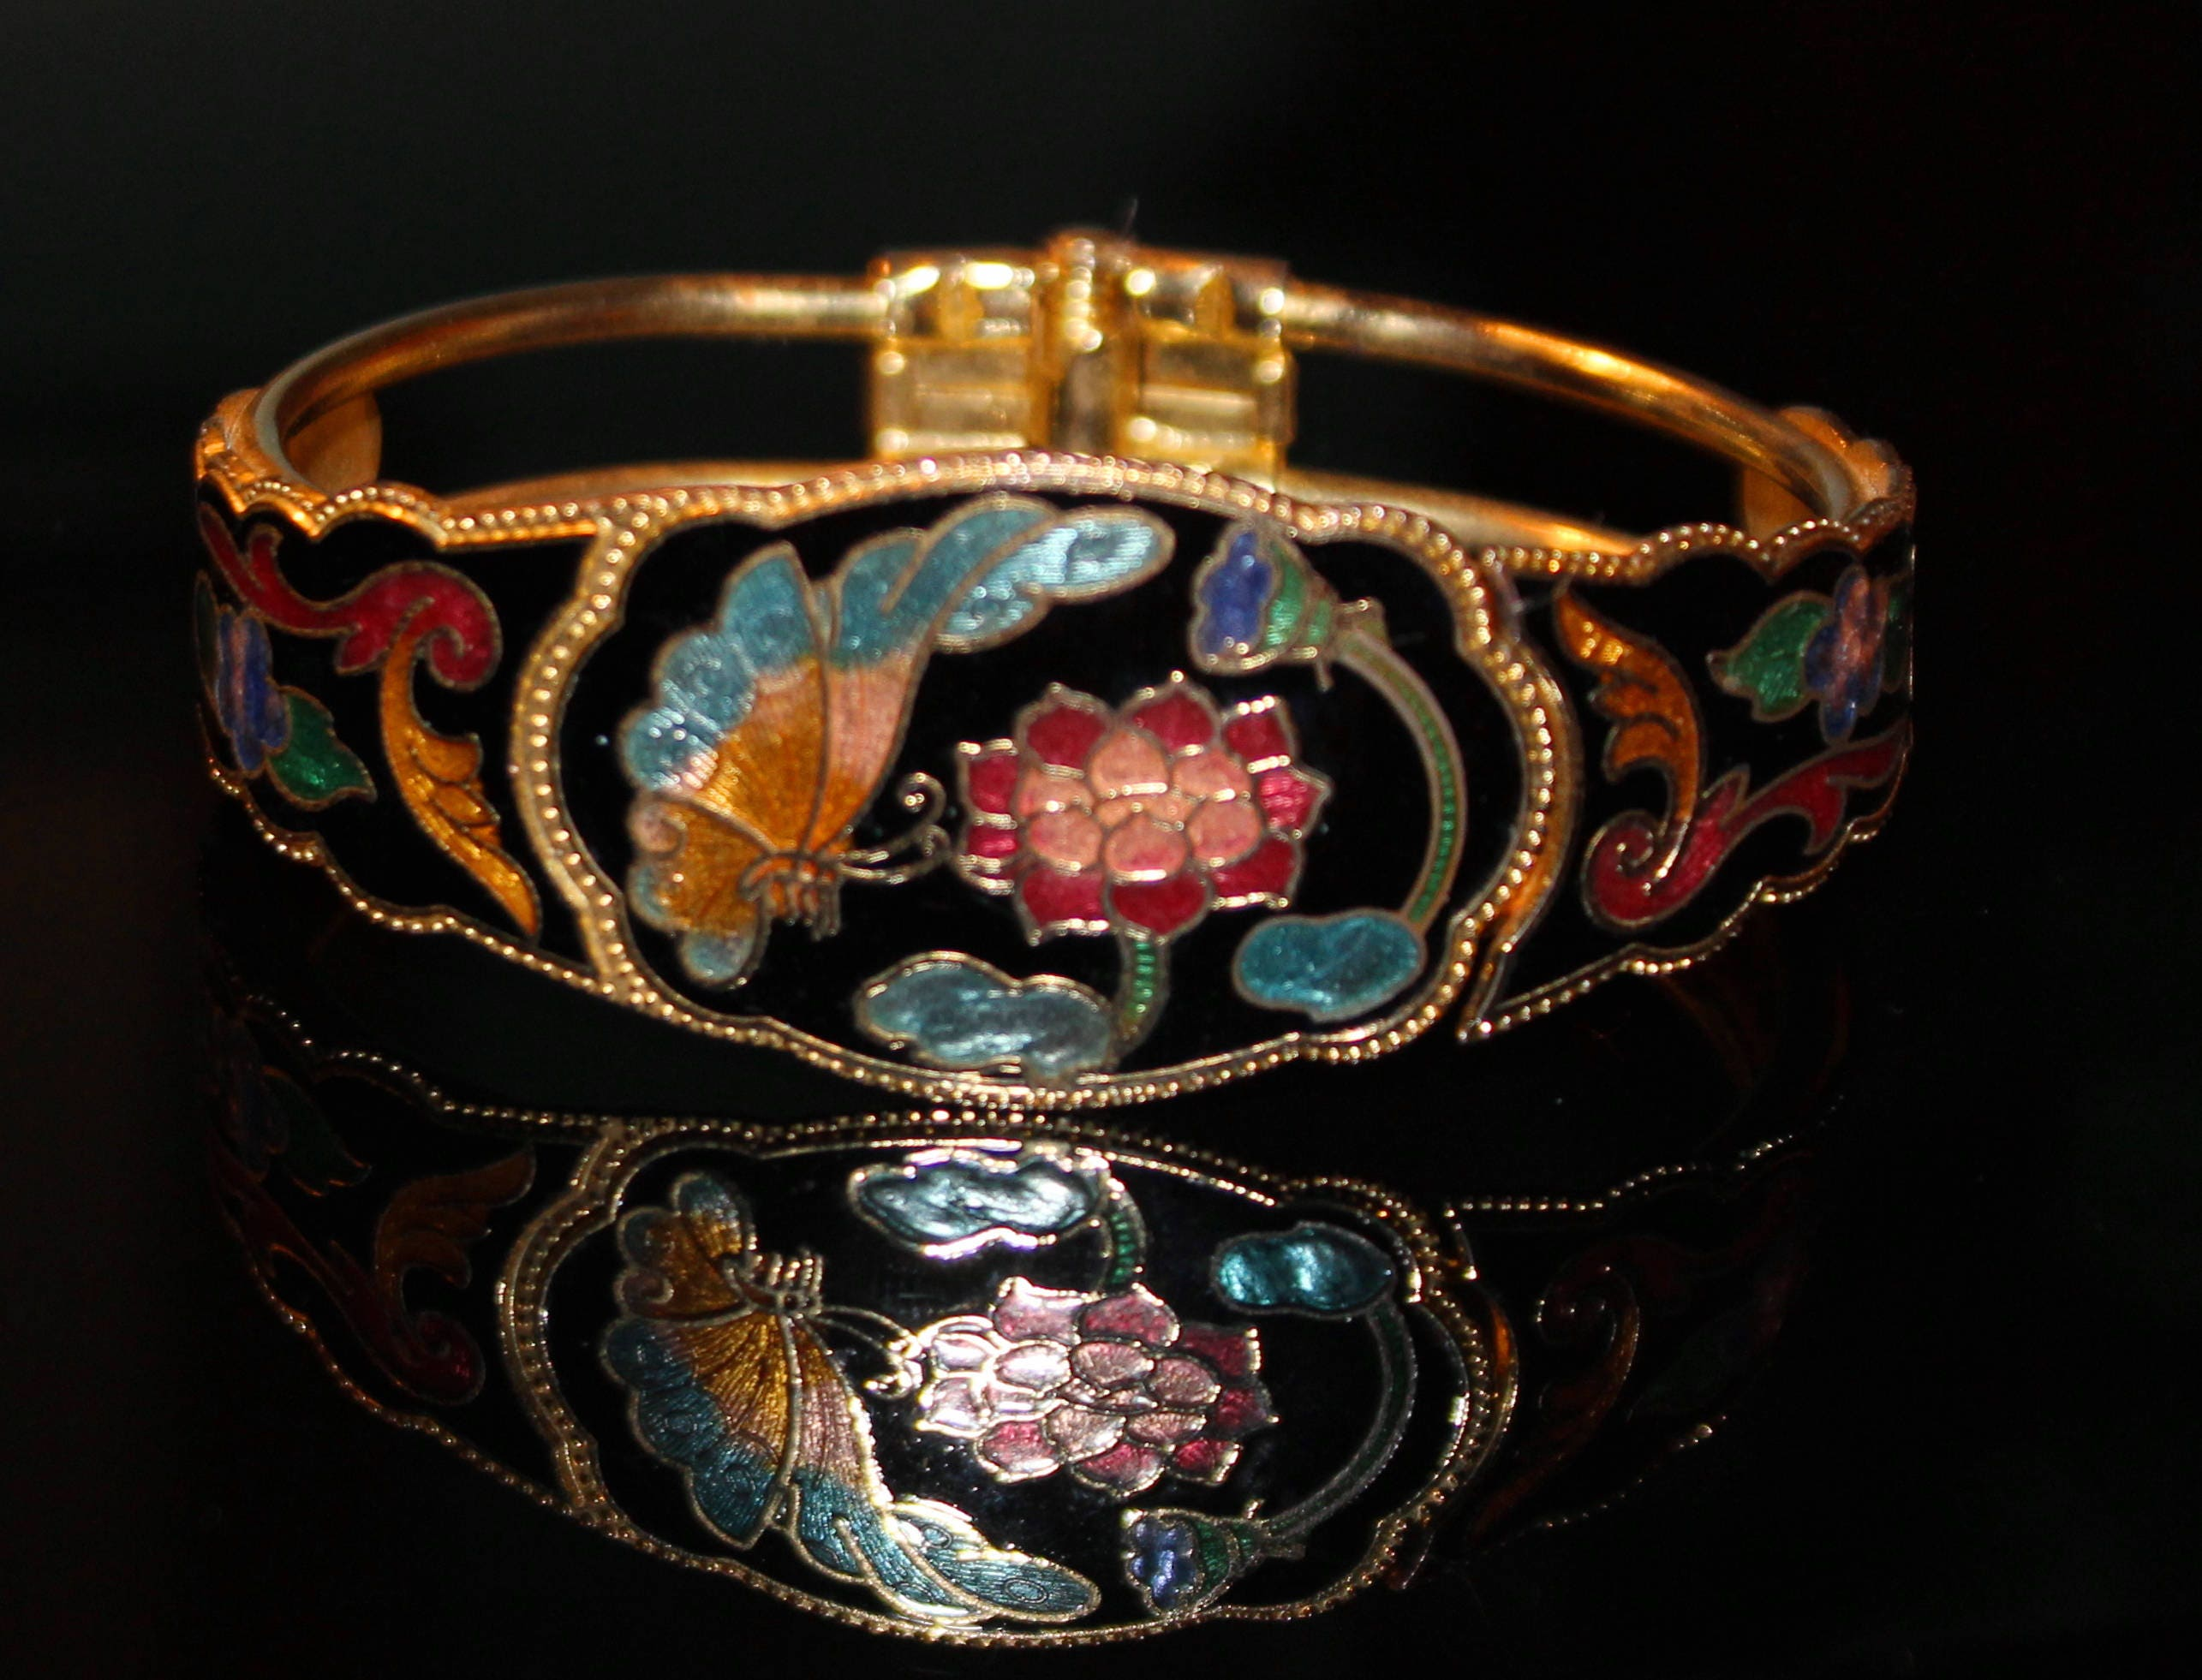 flower molded listing in il fullxfull celluloid japan clamper made bangle bracelet